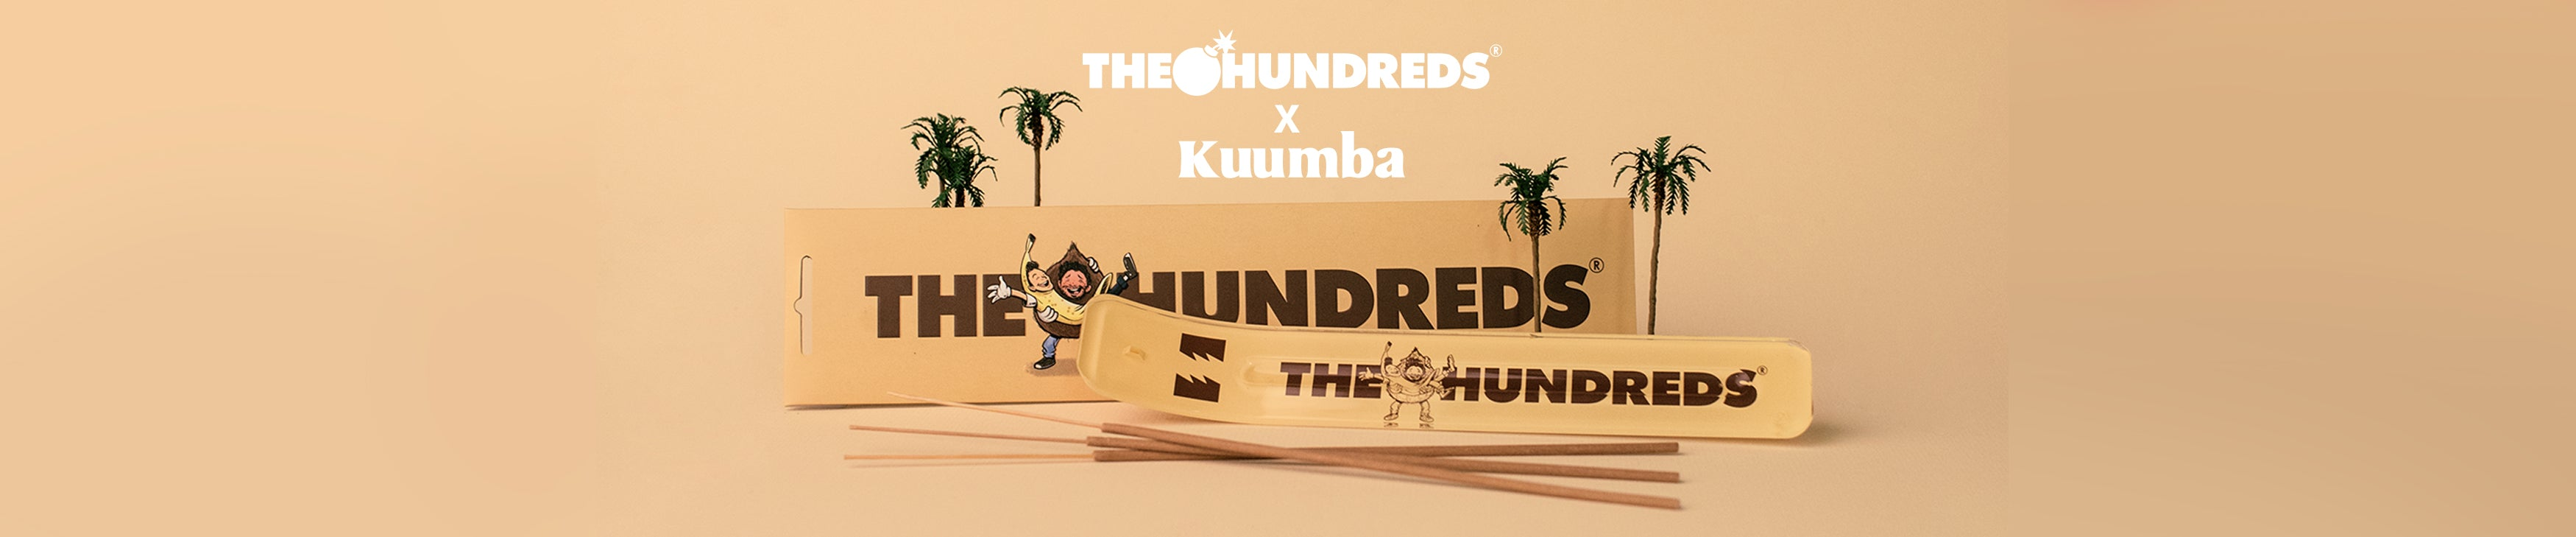 The Hundreds X Kuumba